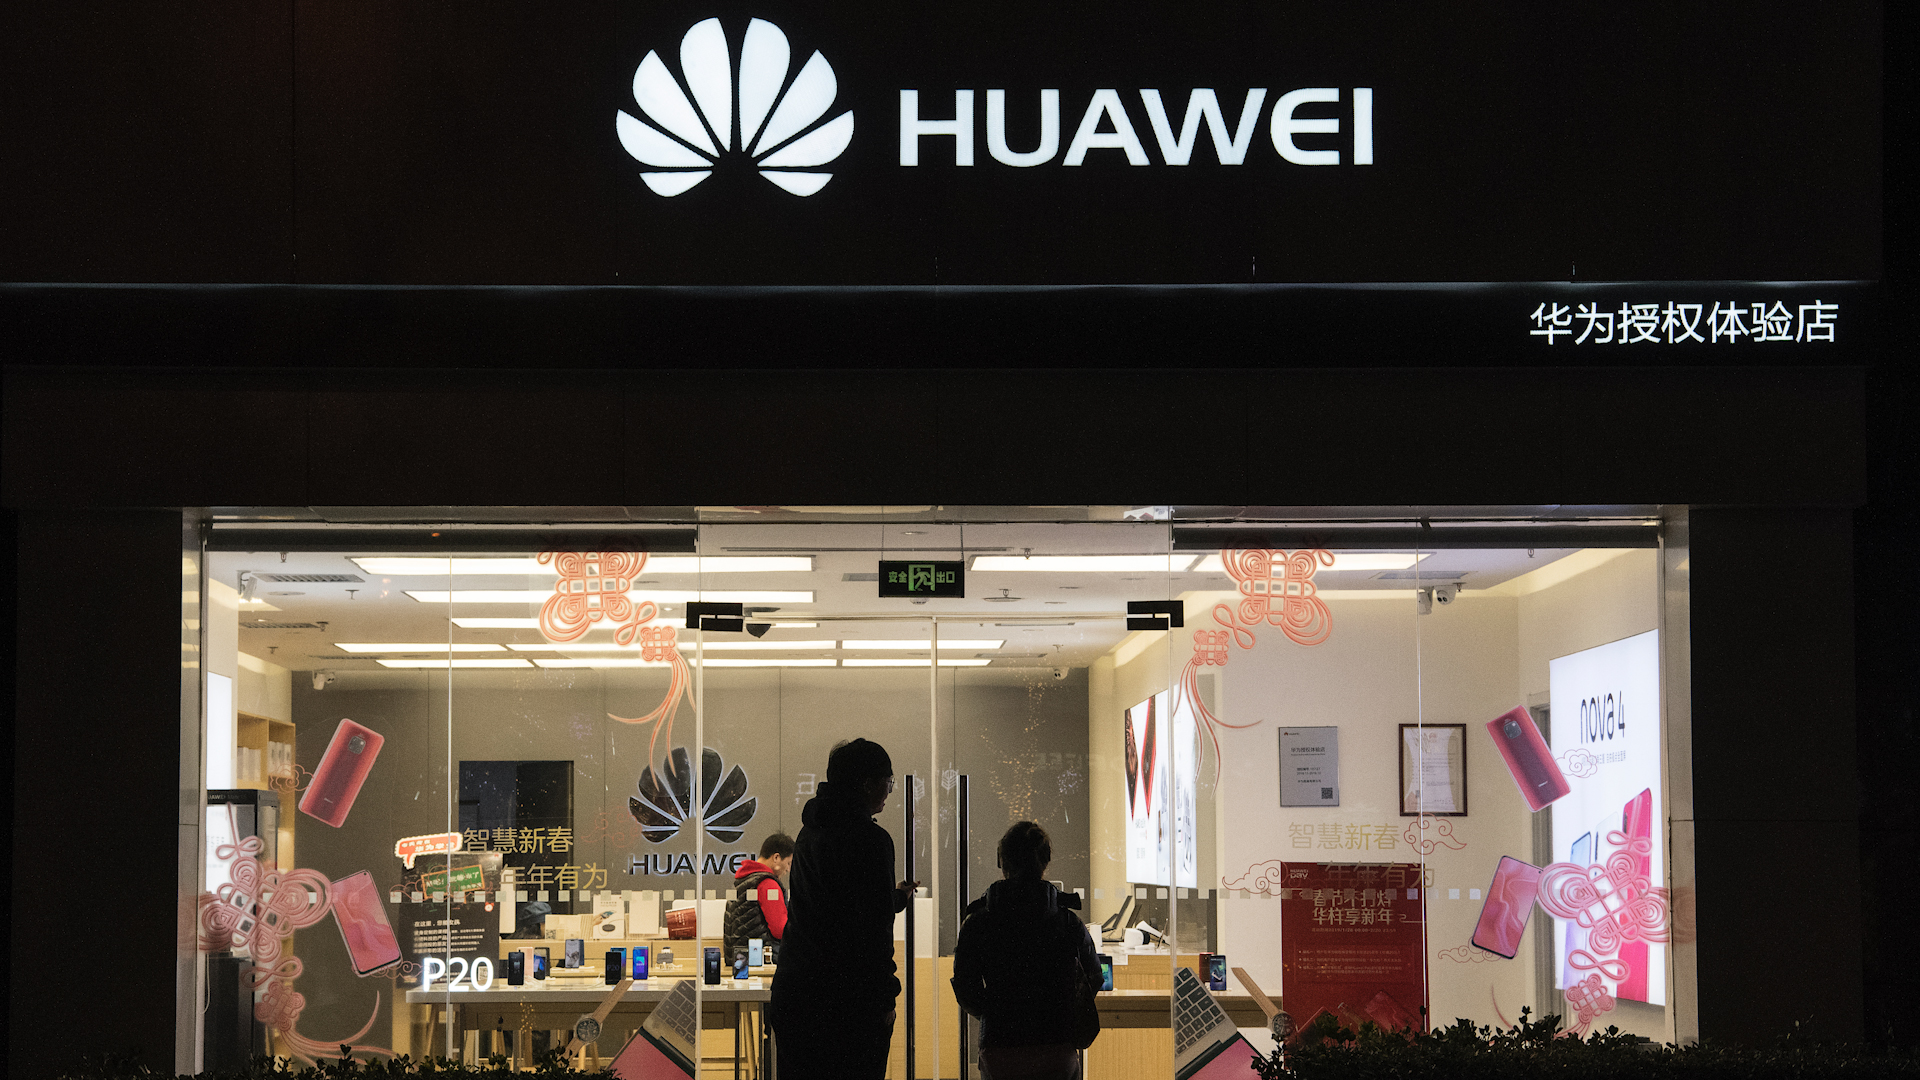 Trump Is Losing the Fight to Ban Huawei From Global Networks - Bloomberg